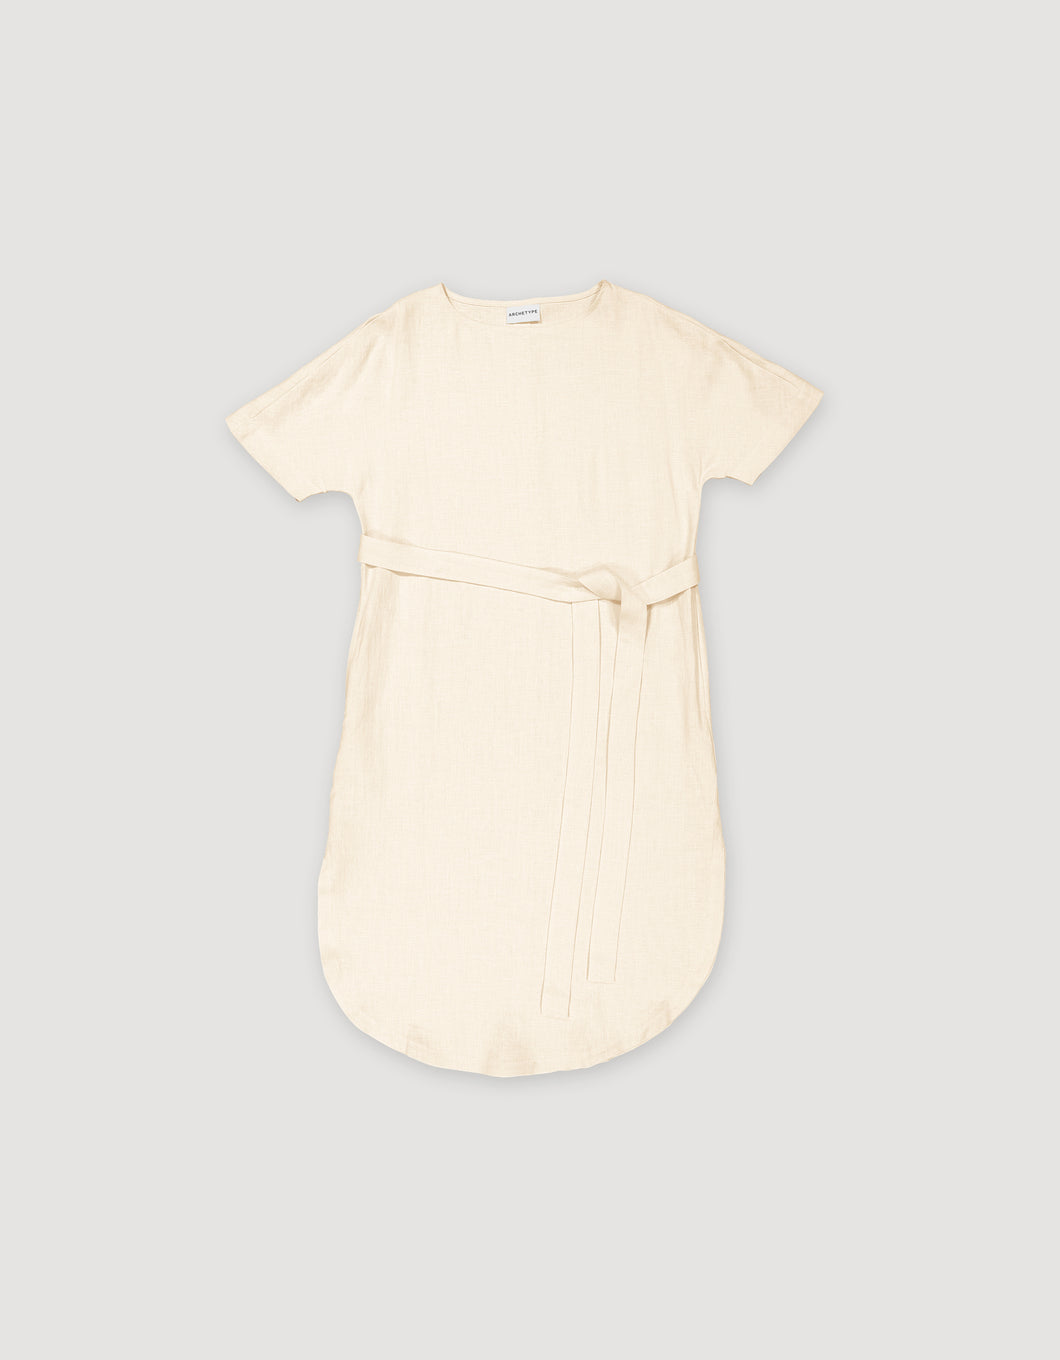 T-SHIRT DRESS WITH BELT (ECRU)